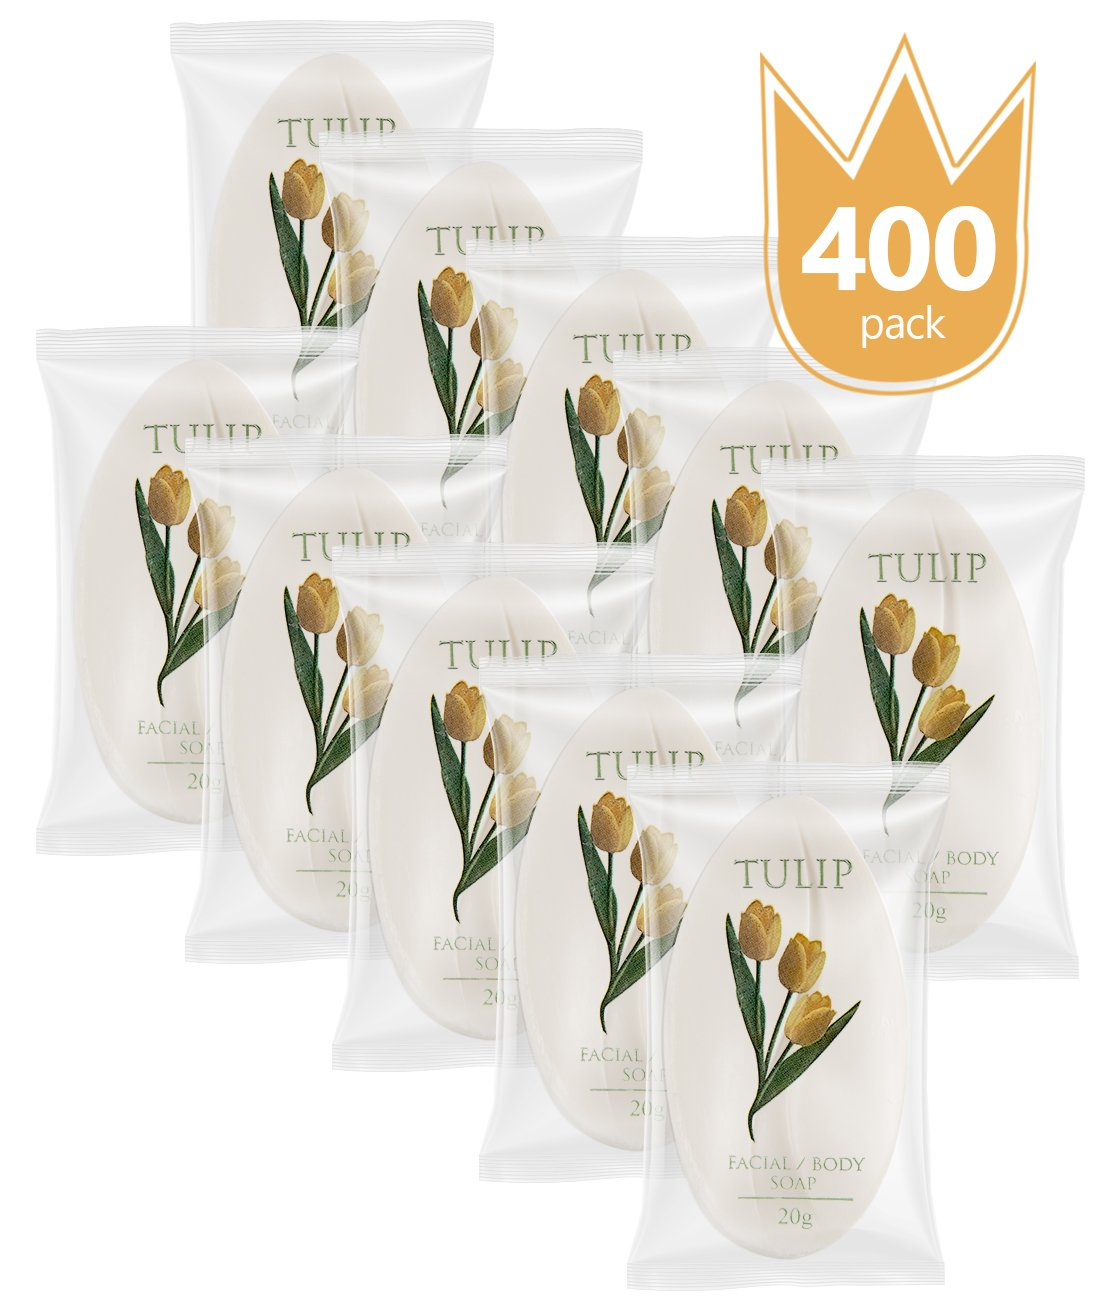 TULIP 400 Count Travel / Spa Facial Body Soap 0.7 Ounce Hotel Size In Bulk Individually Wrapped Scented With A Fresh Fragrance by Tulip